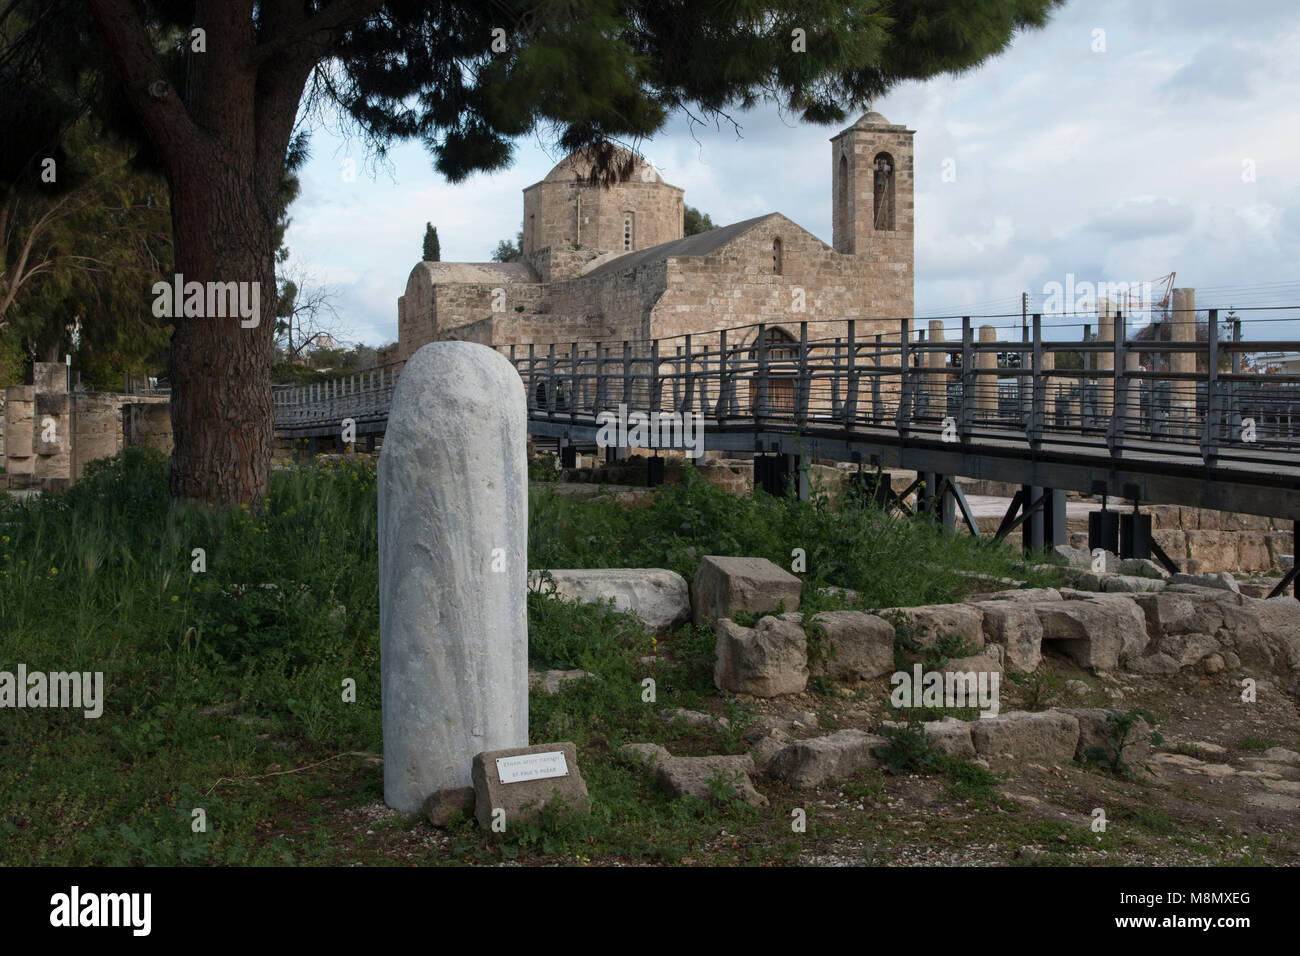 St Pauls pillar and church in the tourist area of Paphos, Cyprus Mediterranean - Stock Image